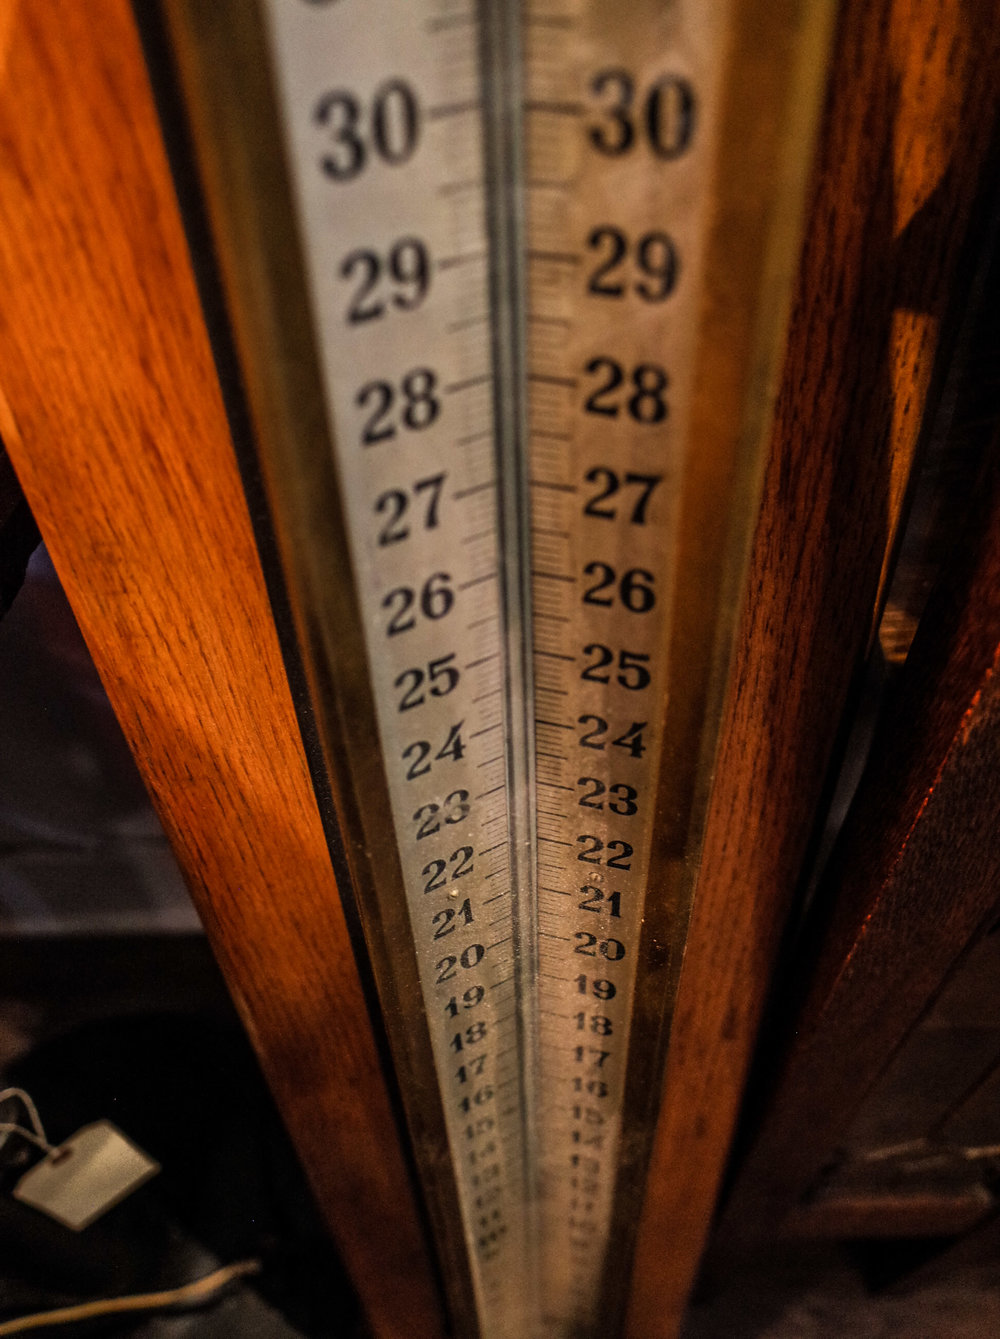 giant-thermometer.jpg